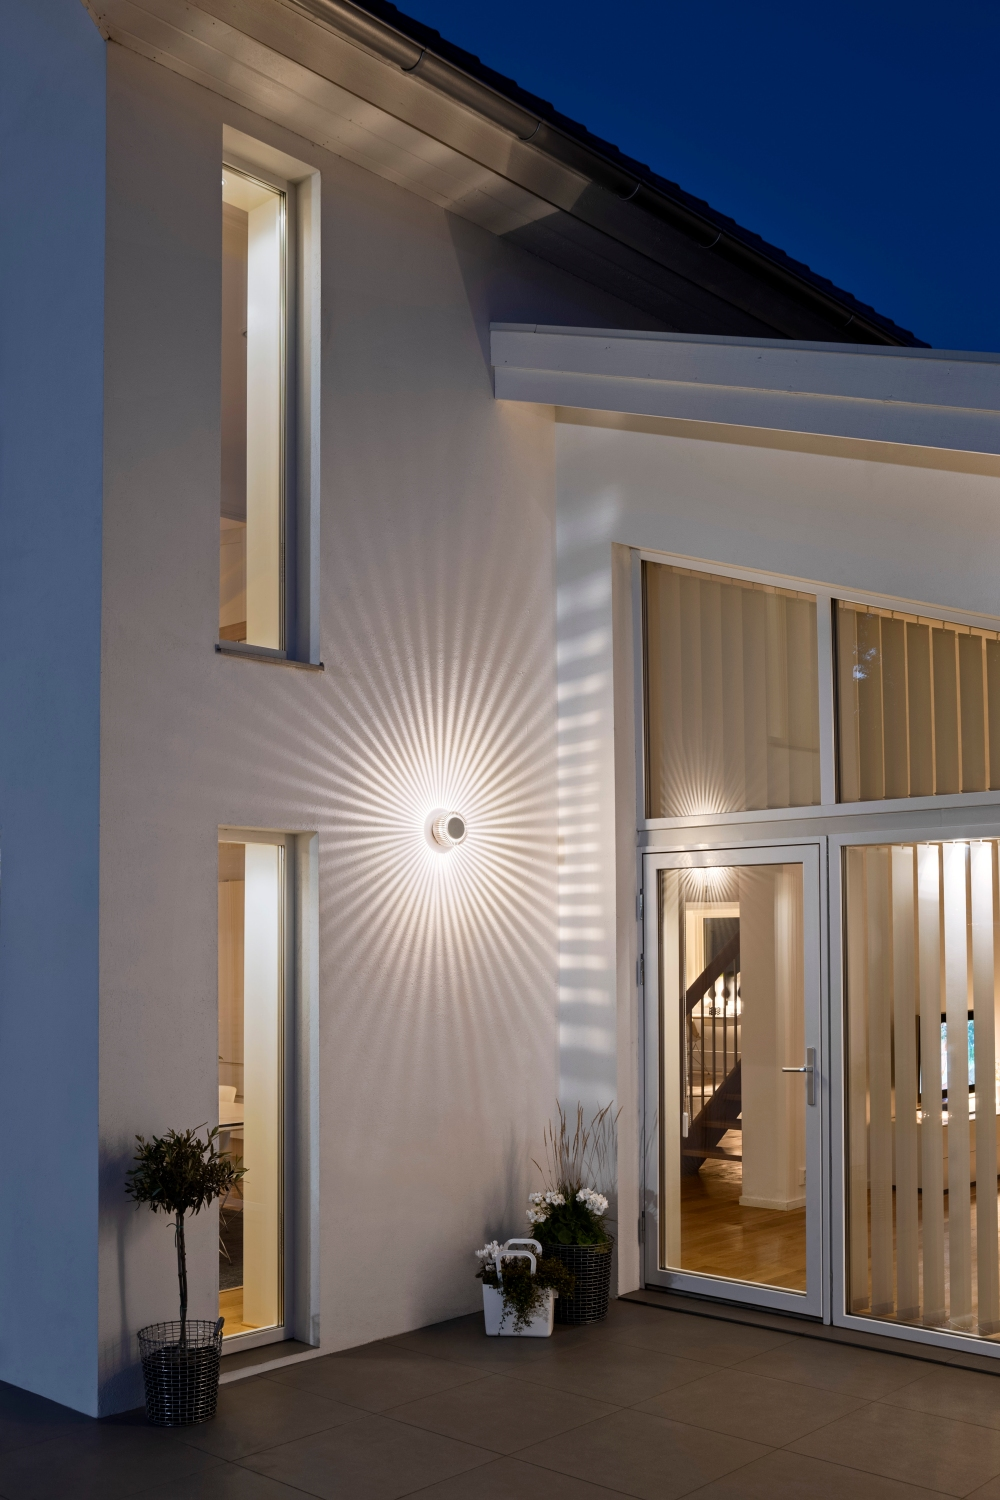 Round Led Decorative Exterior Light